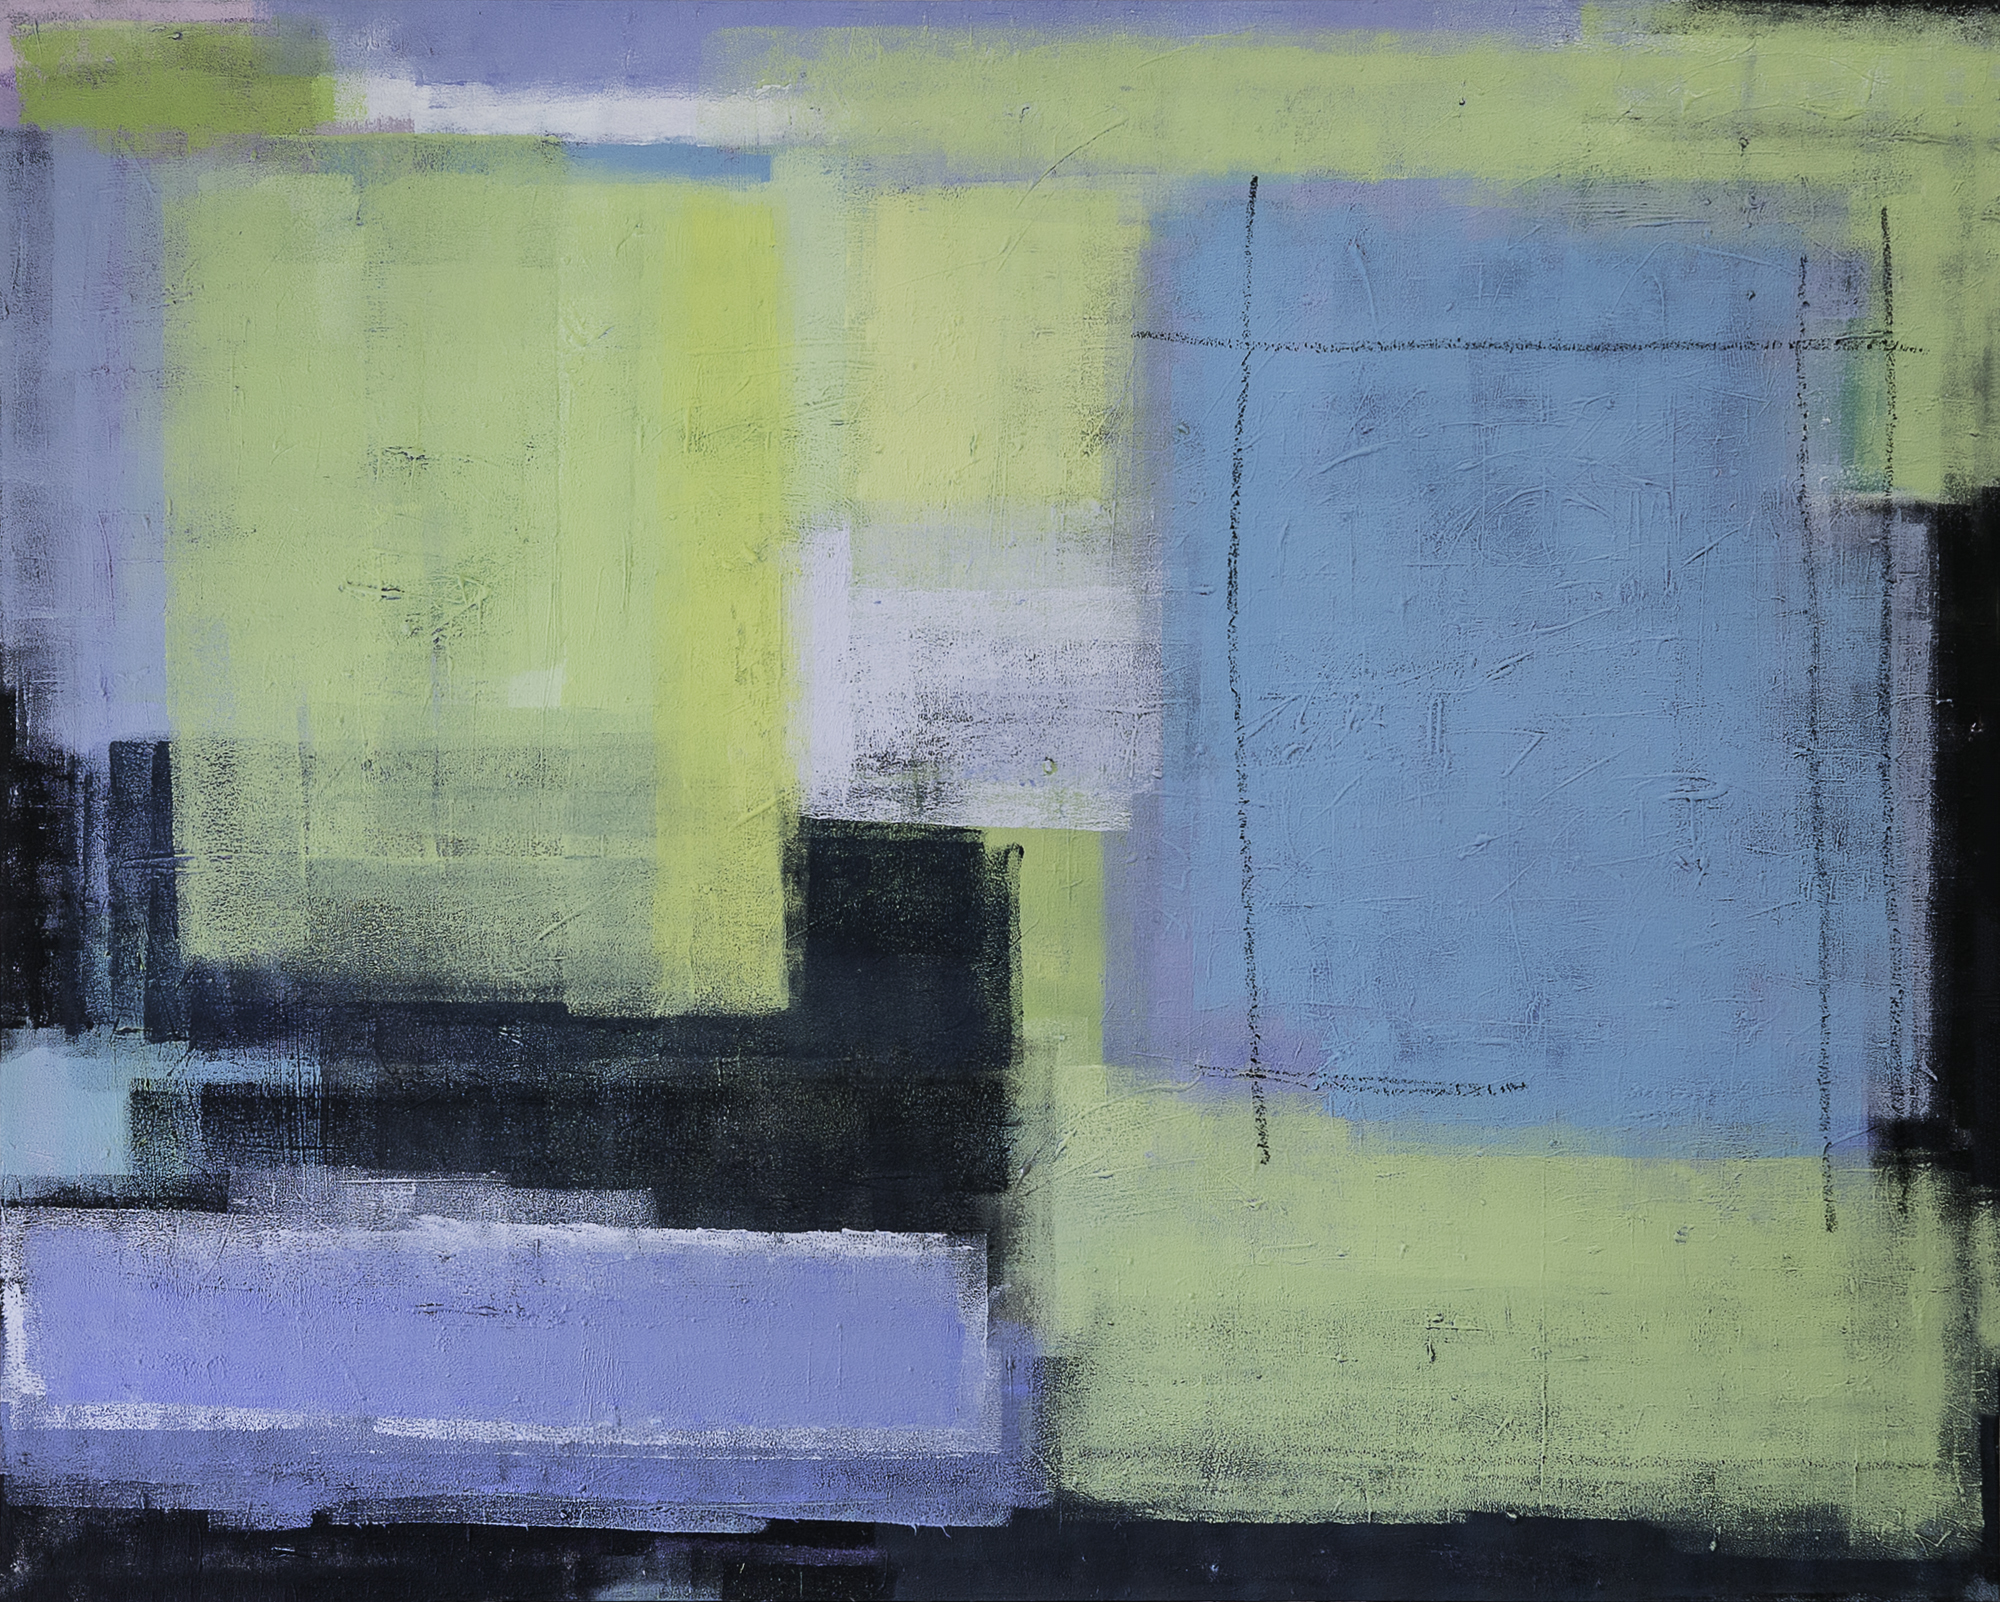 """""""Memoryscapes: Blurry Lines III No. 3"""""""